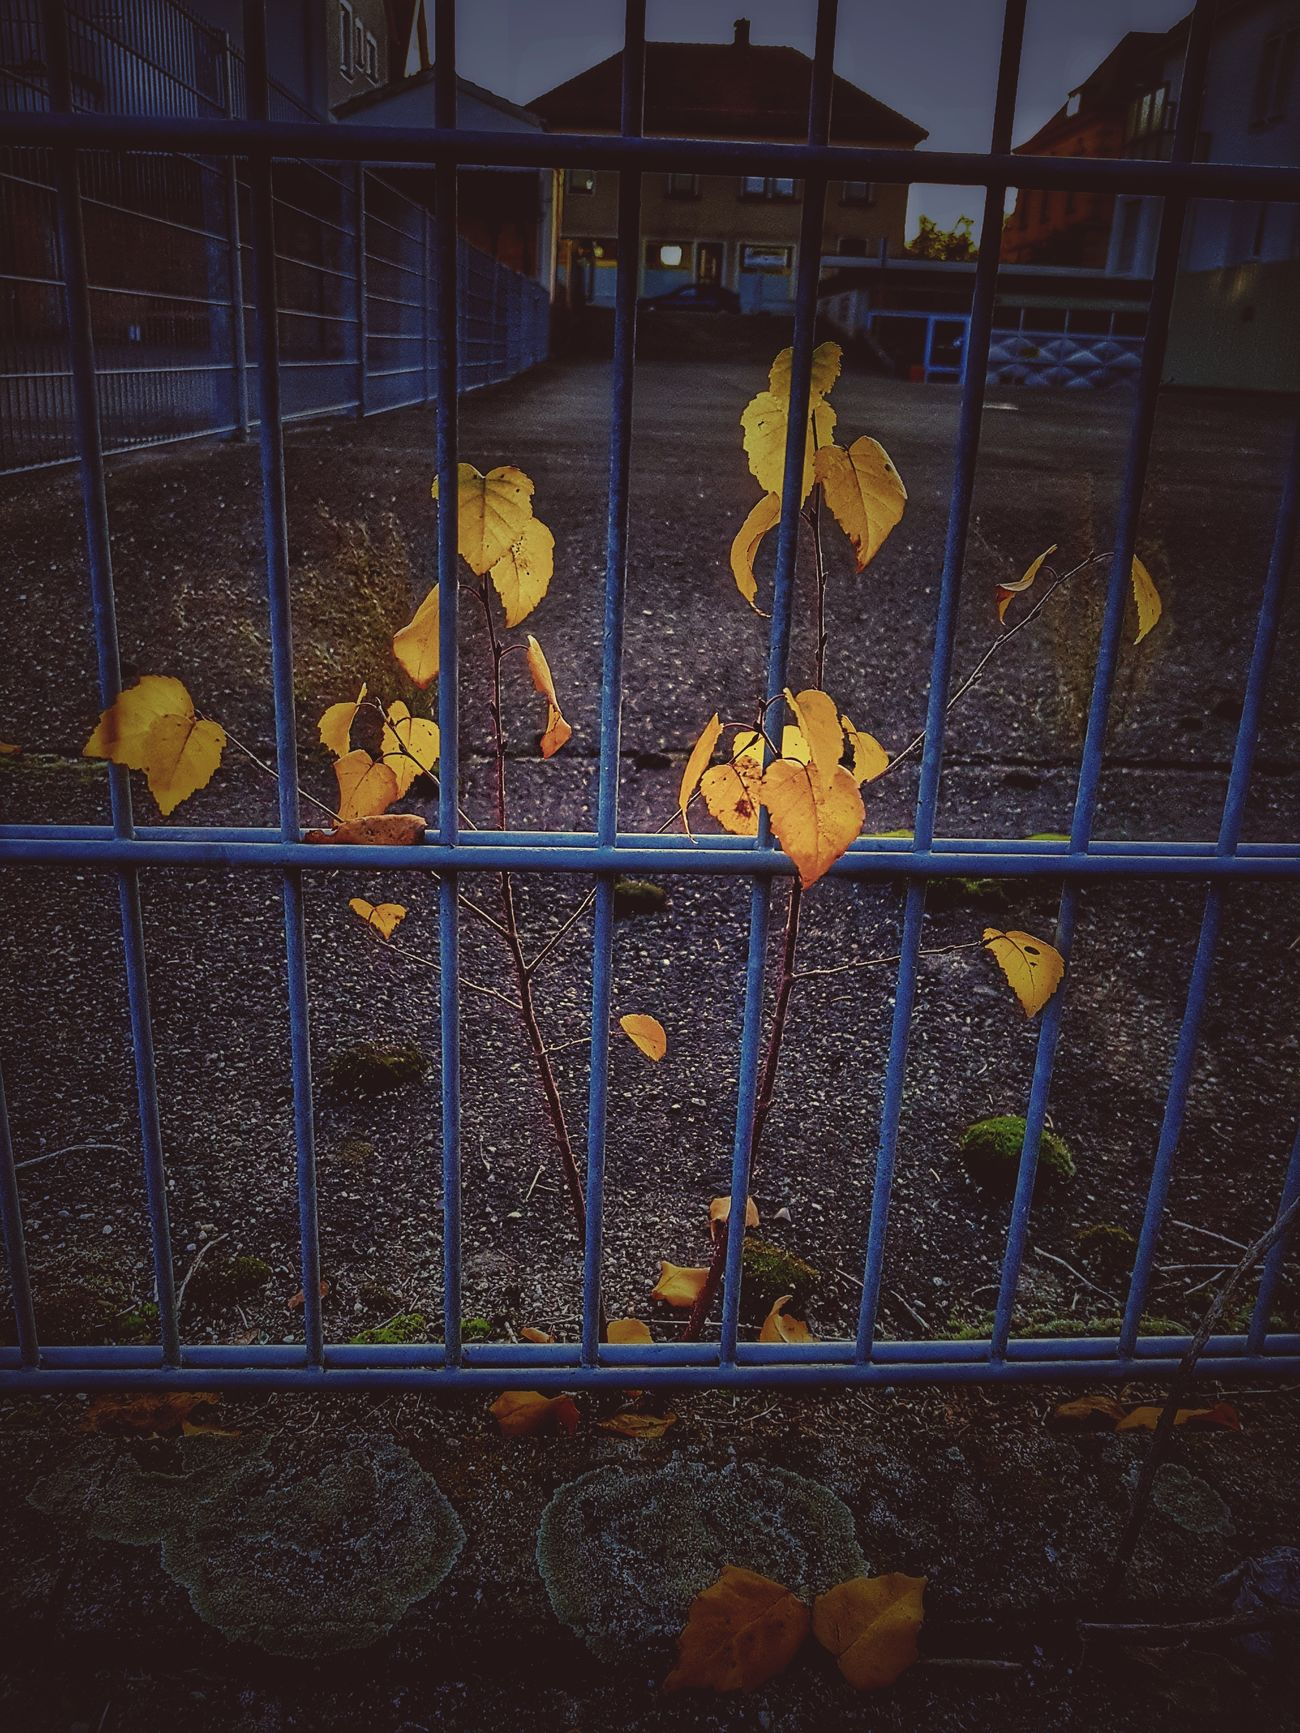 Metal Safety Fence Protection No People Day Outdoors Close-up Plant Nature_collection Nature Photography Nature Nature On Your Doorstep Autumn Colors Autumn Collection Branch Autumn Tree Season  Buildings Urban Nature Metal Grate Focus On Foreground Small Tree